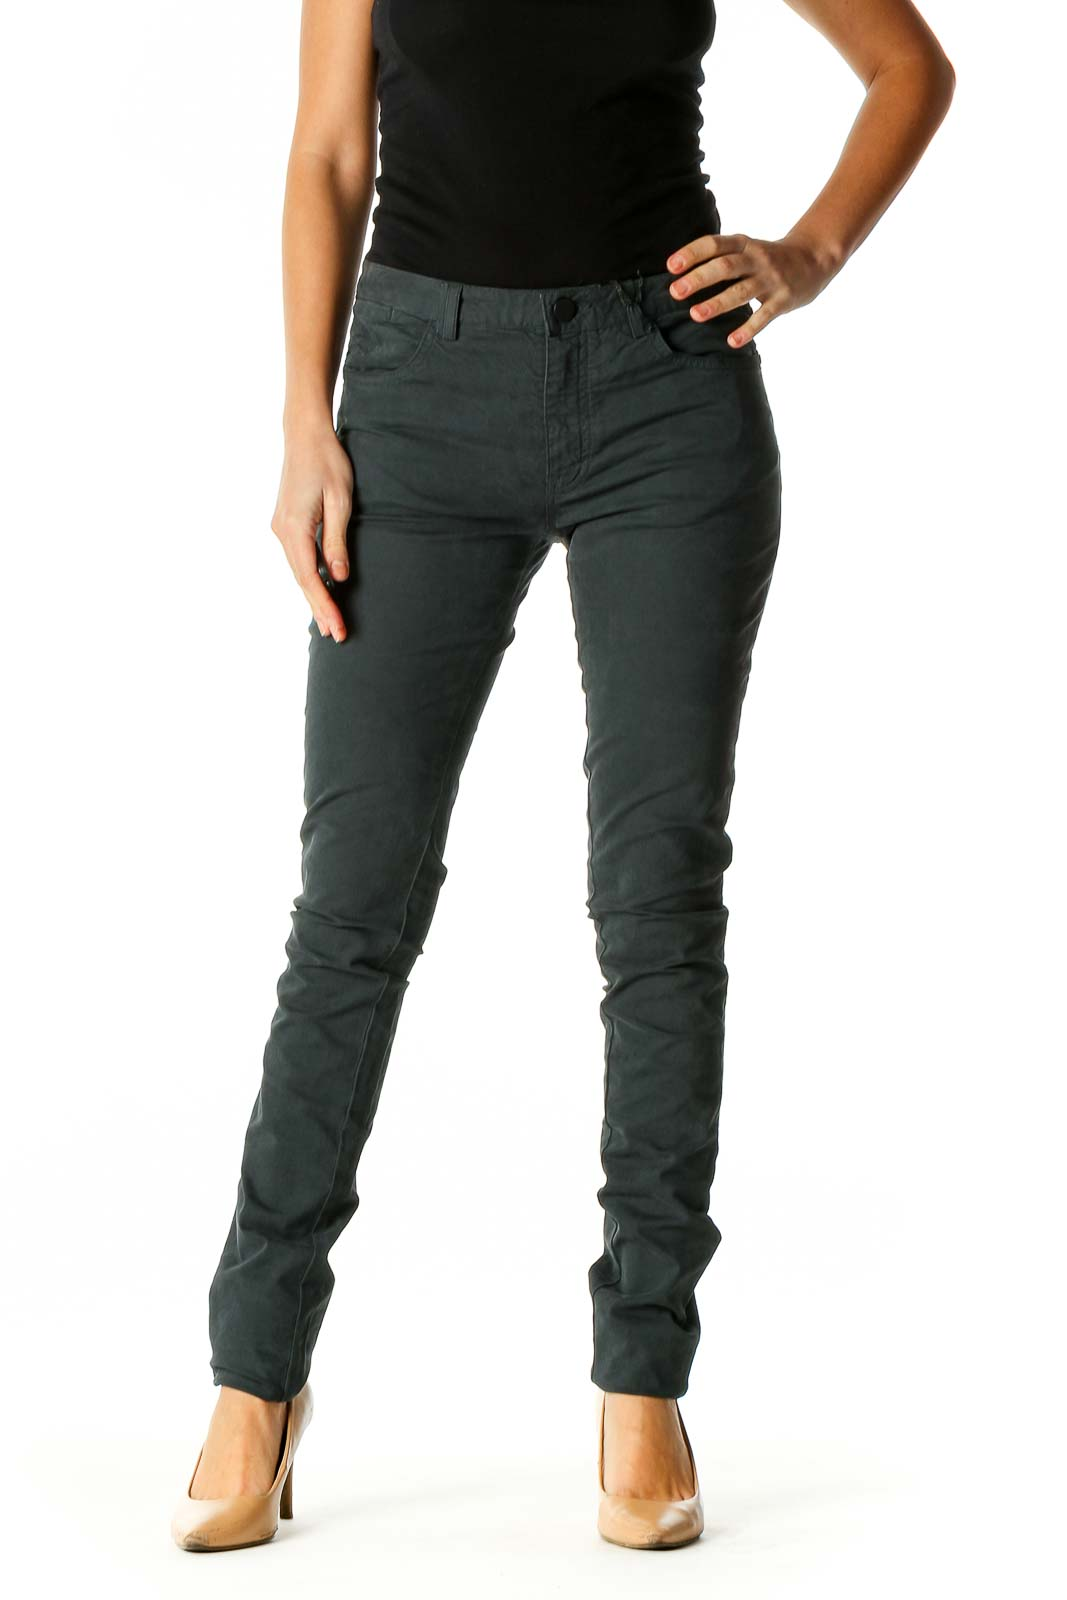 Gray Solid All Day Wear Pants Front